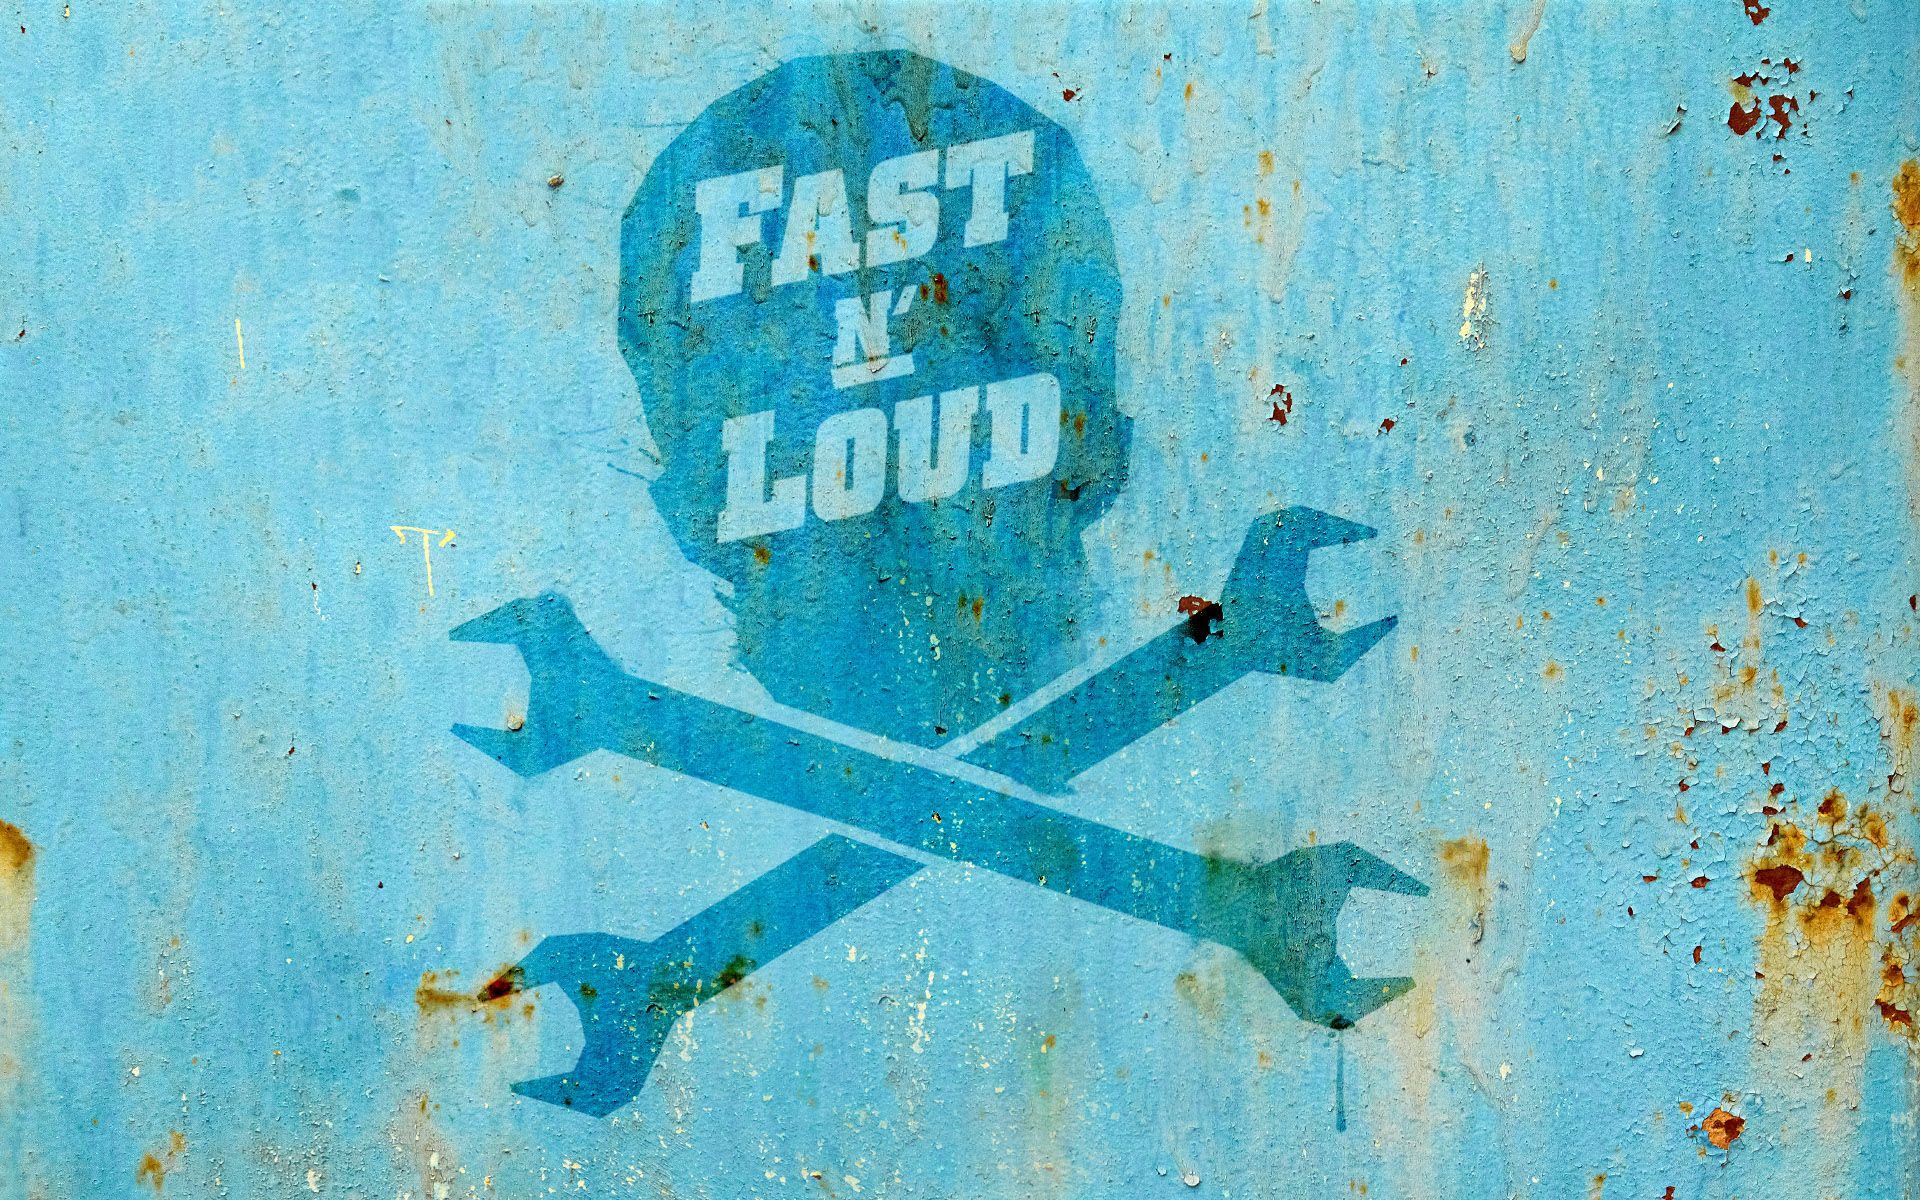 Fast N' Loud Wallpaper Gas monkey, Gas monkey garage